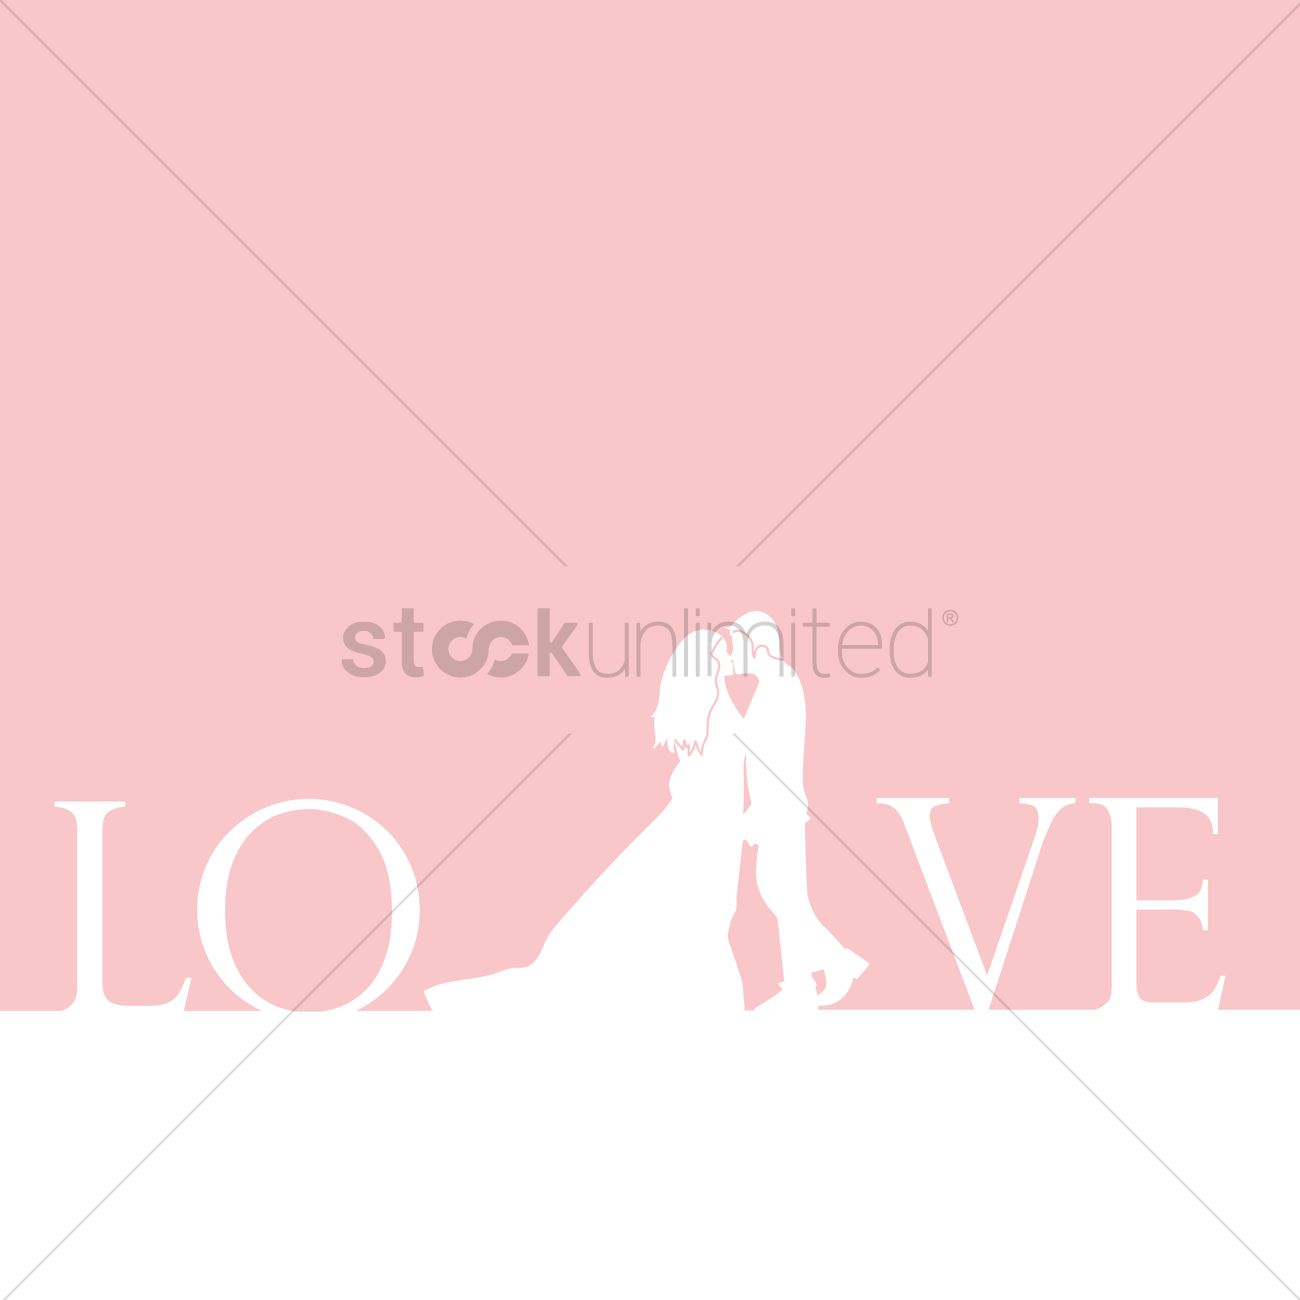 Love Wallpapers Vector : Love wallpaper Vector Image - 1703402 StockUnlimited